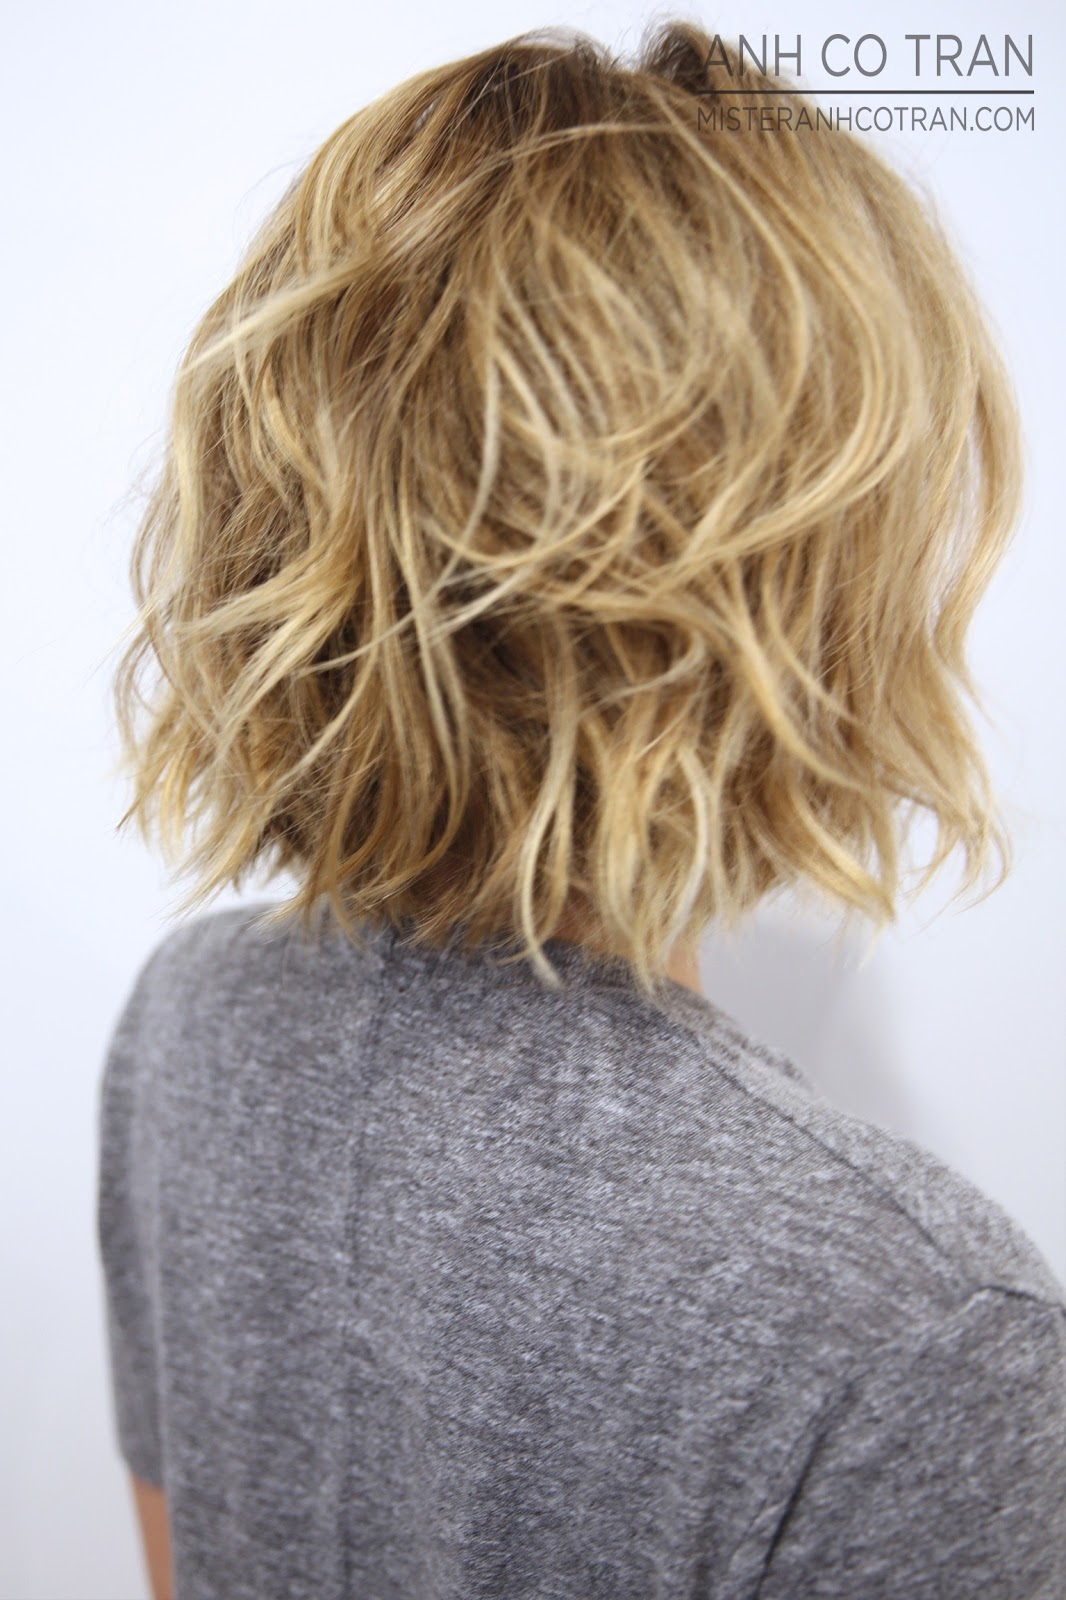 Short Hair Saturday From All Angles Anh Co Tran